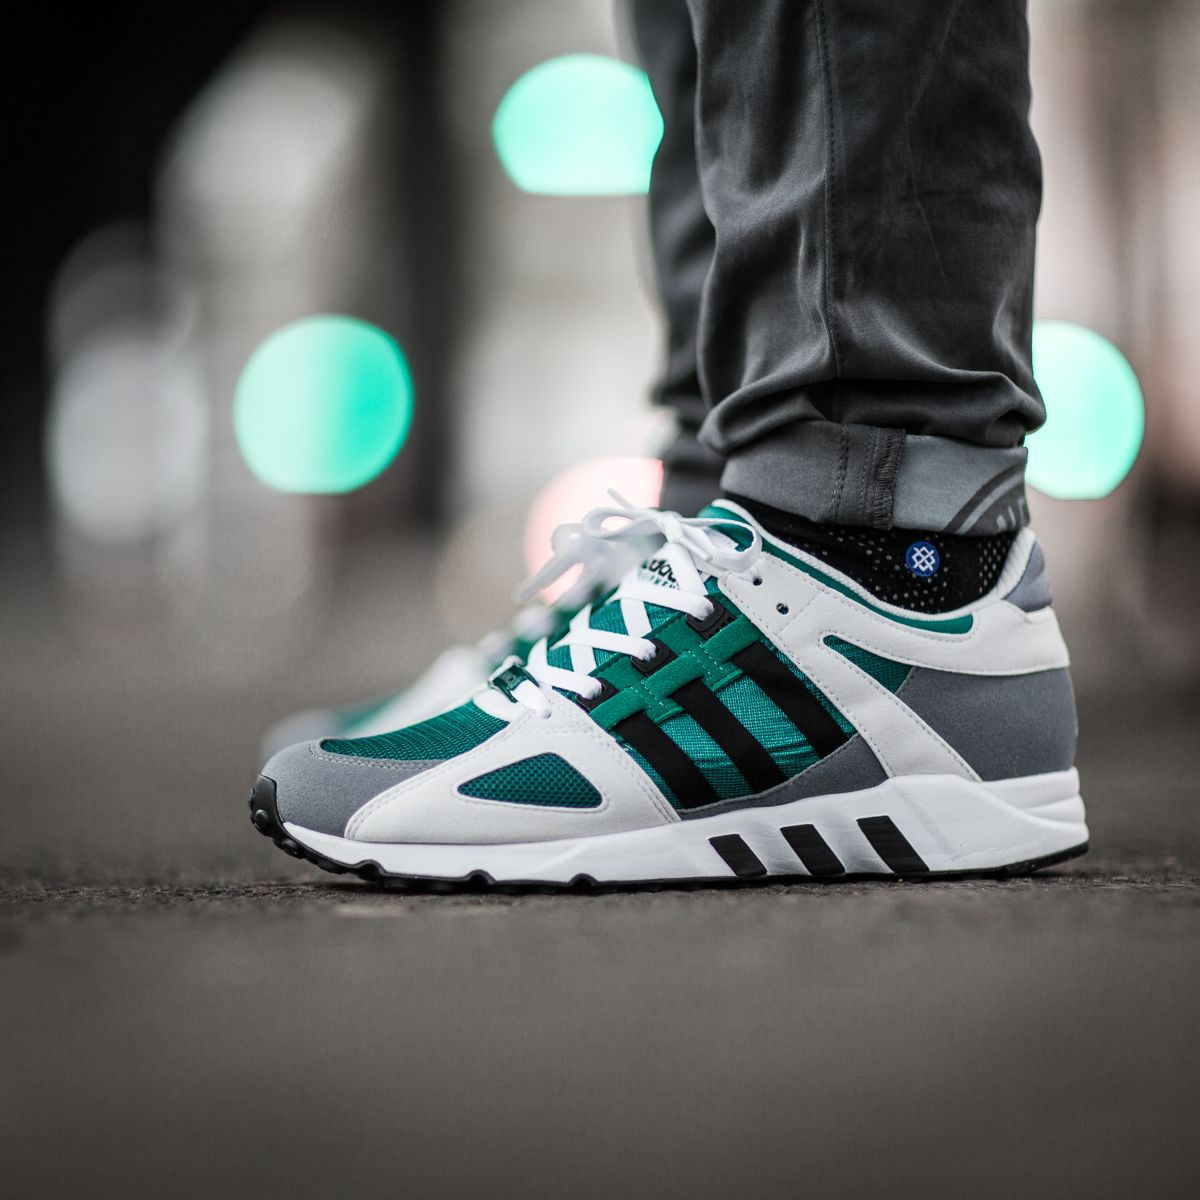 Adidas Eqt Running Guidance 93 M